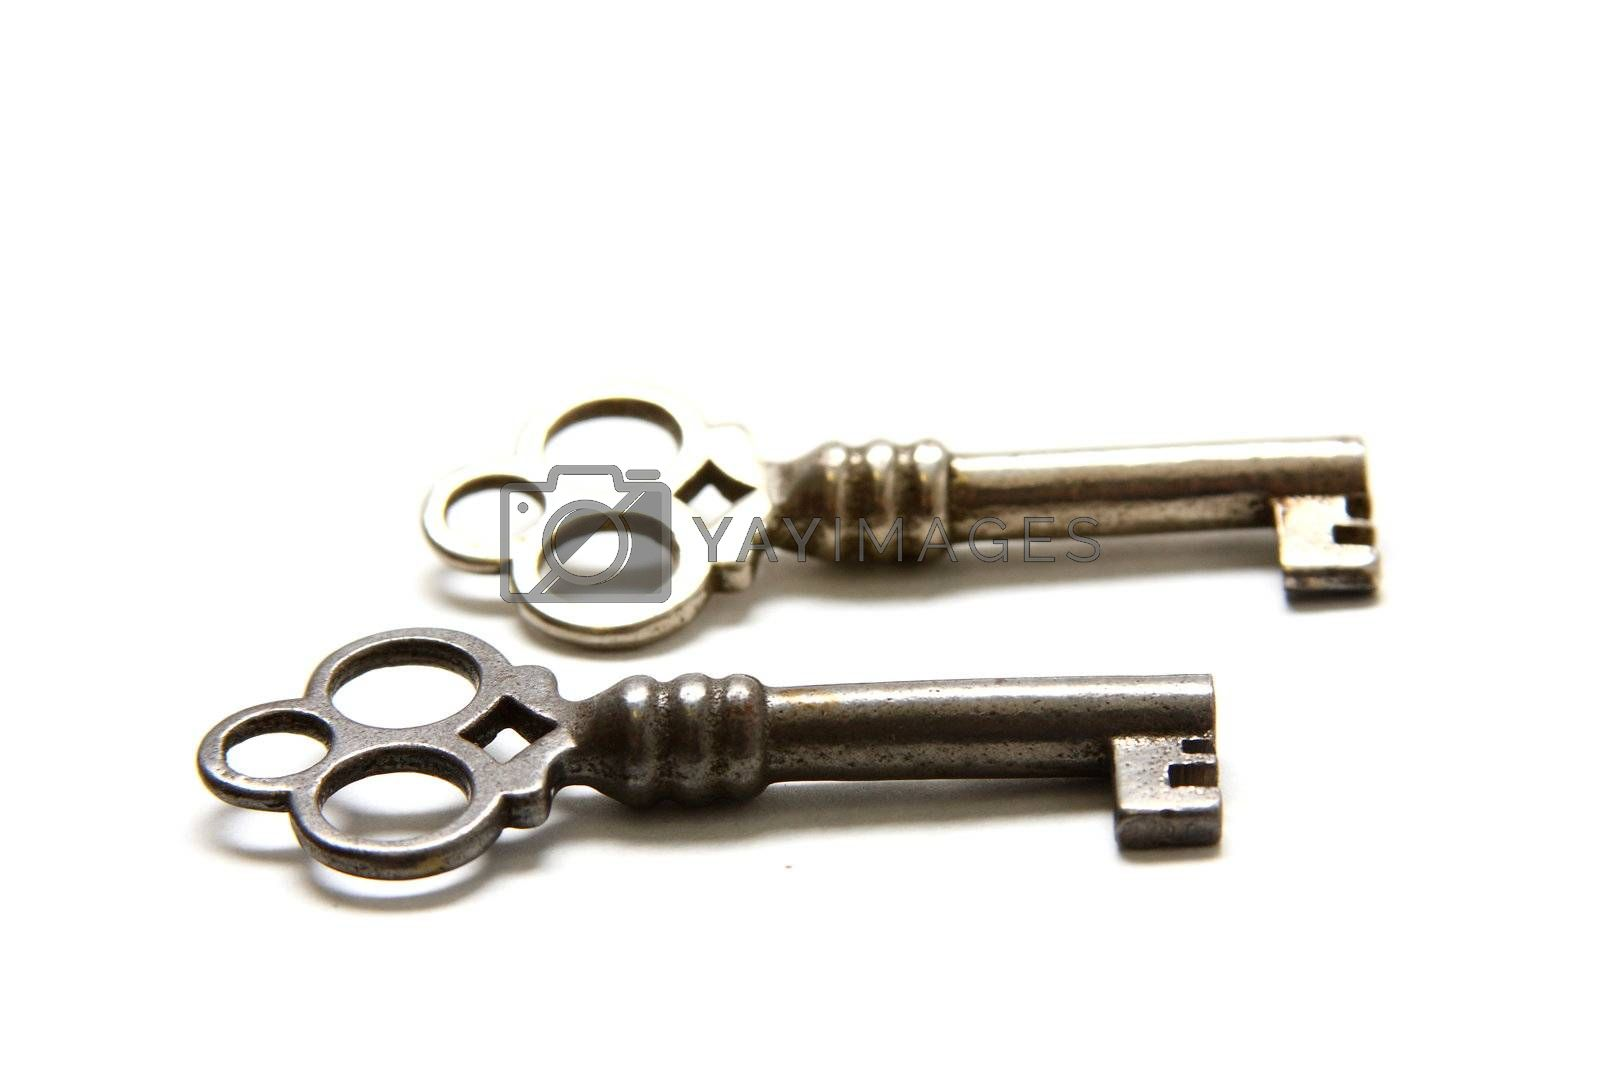 Isolated shot of two metal antique keys on white background